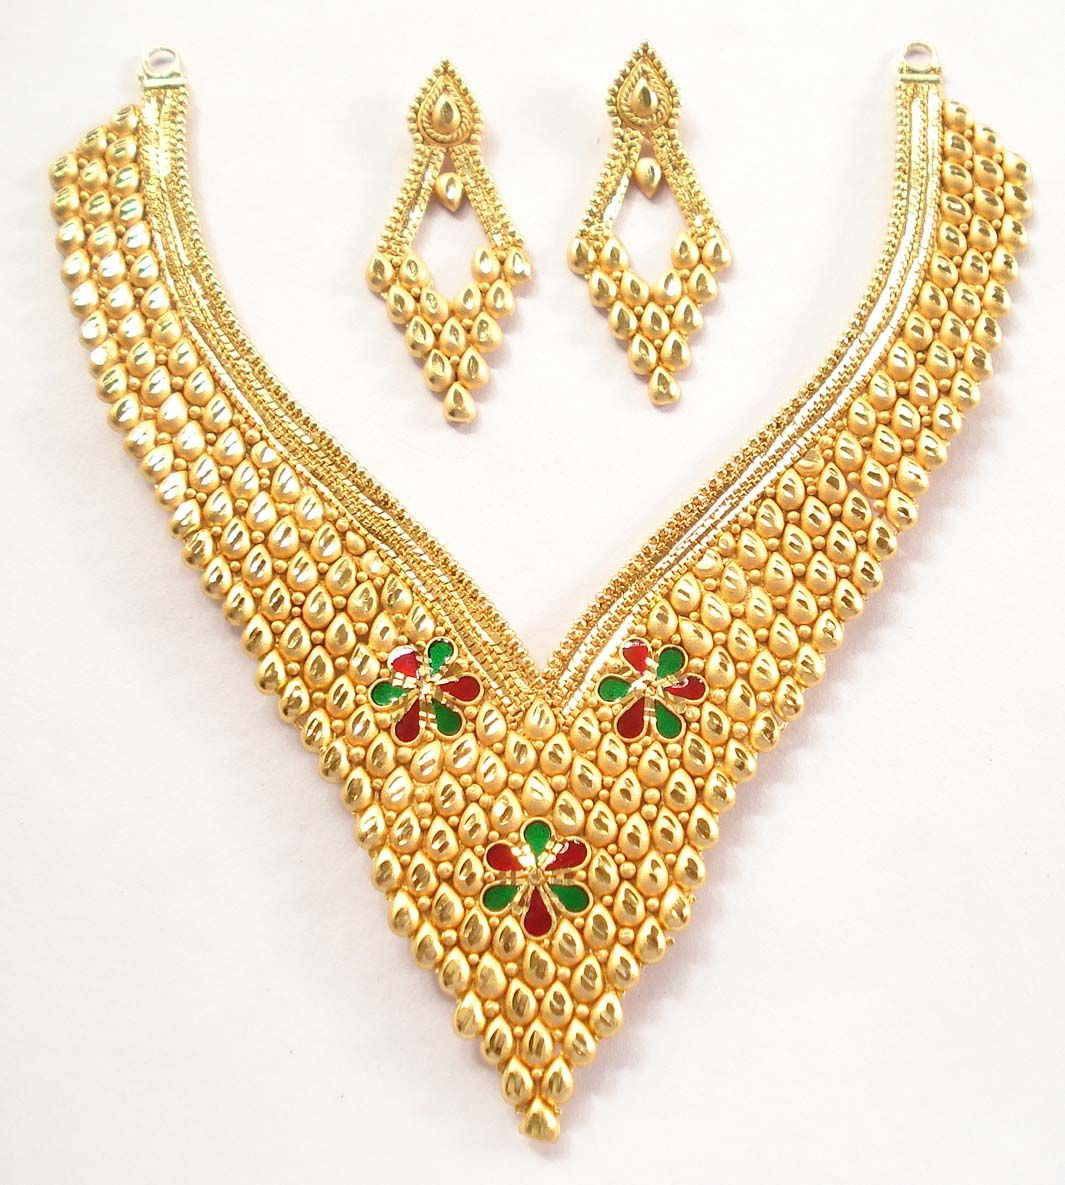 Gold necklace designs with price in rupees jewelry gallery - Gold Gold Necklace Designs